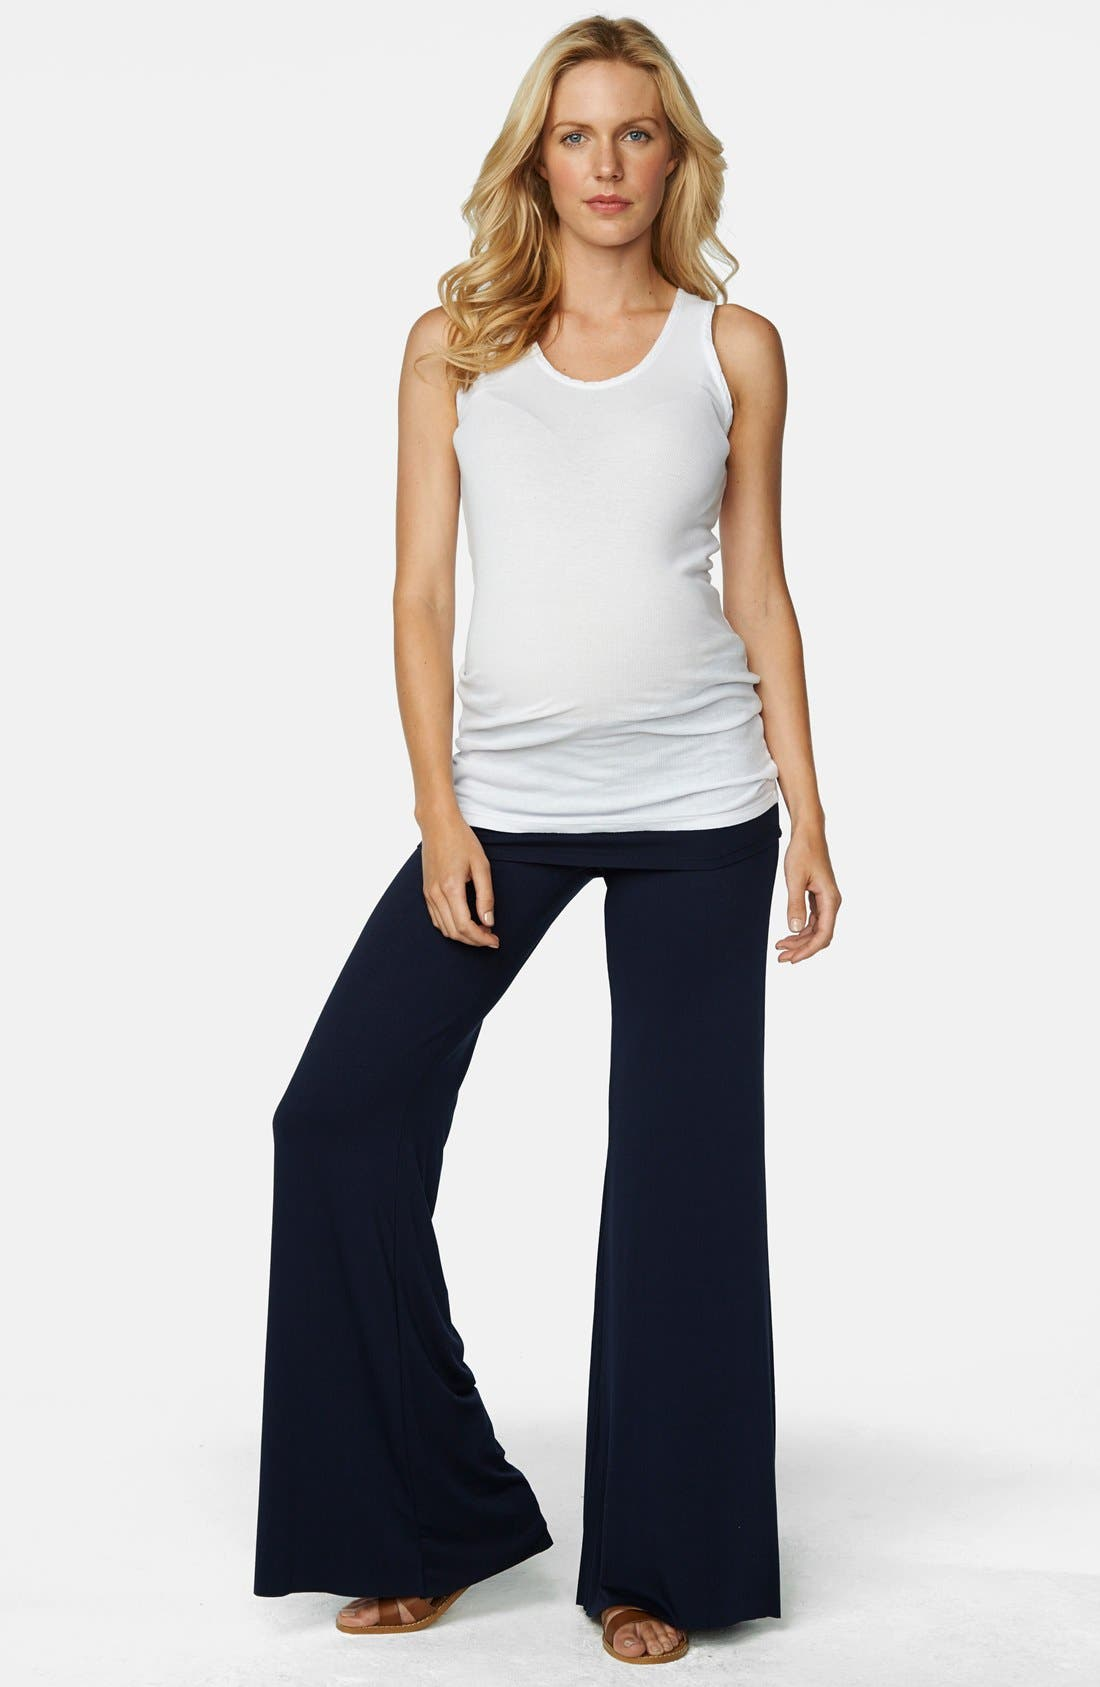 Find a great selection of flare and wide leg jeans for women at free-cabinetfile-downloaded.ga Shop by rise, wash, waist size, color and more. Free shipping & returns.